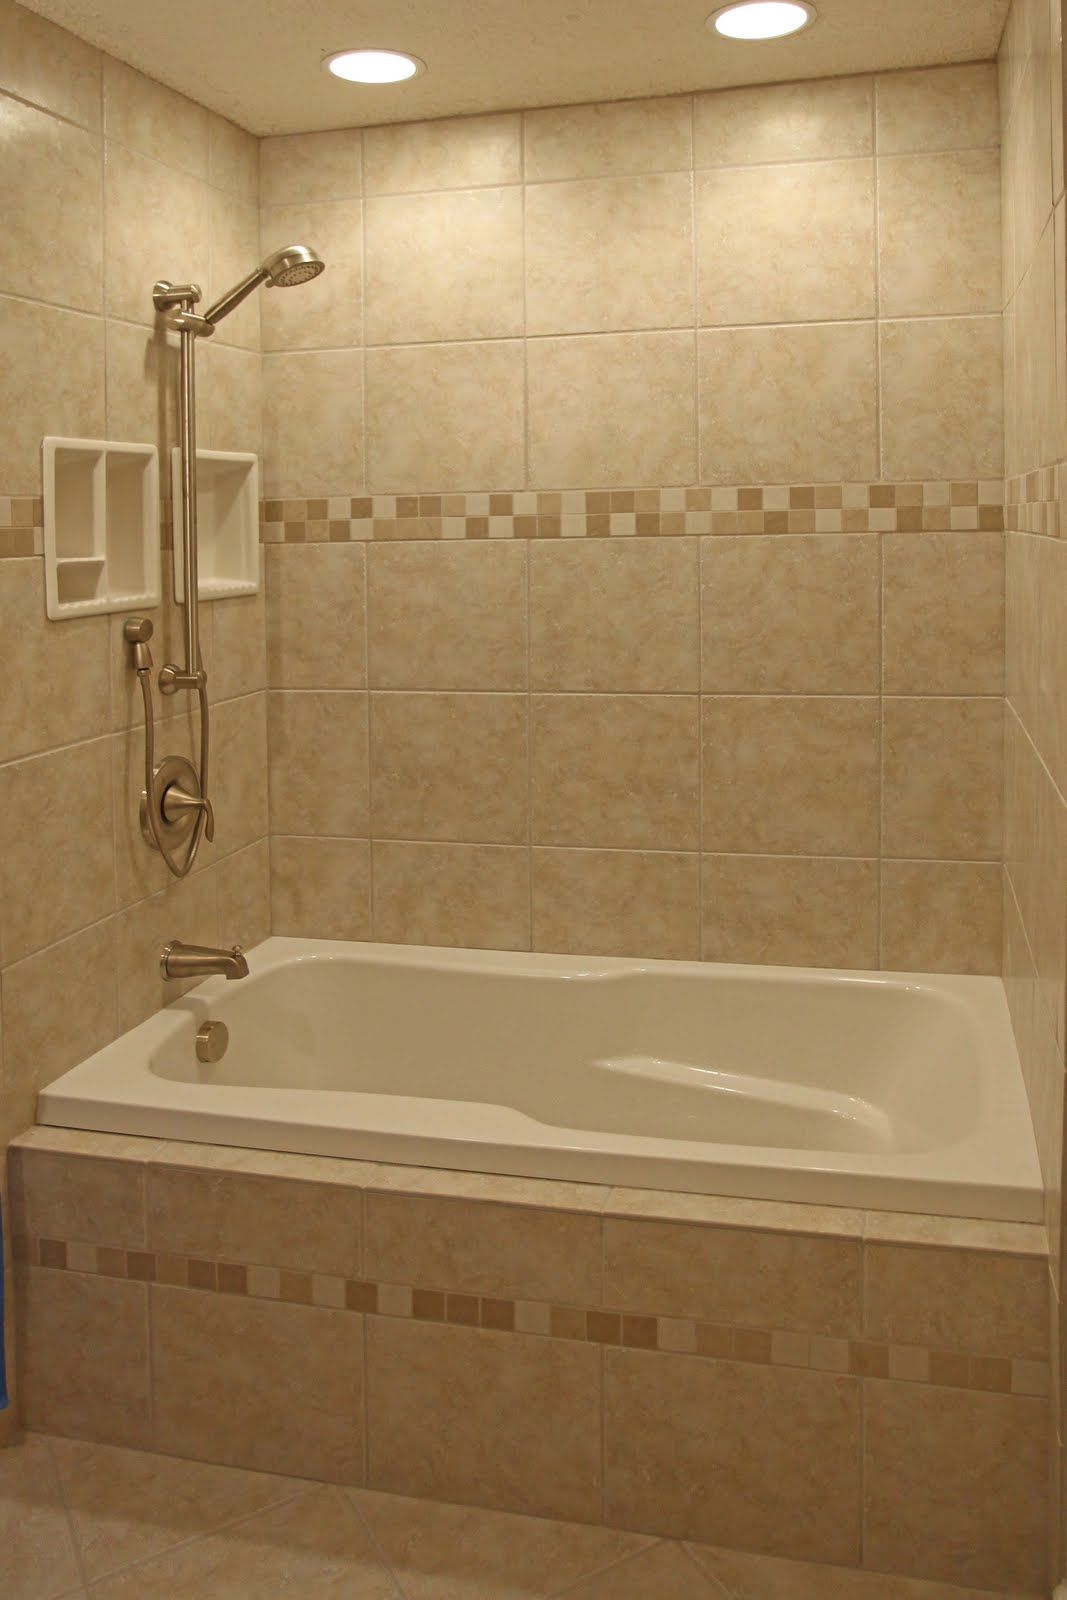 Shower and bath remodel bathroom shower design ideas ceramic shower and bath remodel bathroom shower design ideas ceramic tile bathroom shower design dailygadgetfo Choice Image